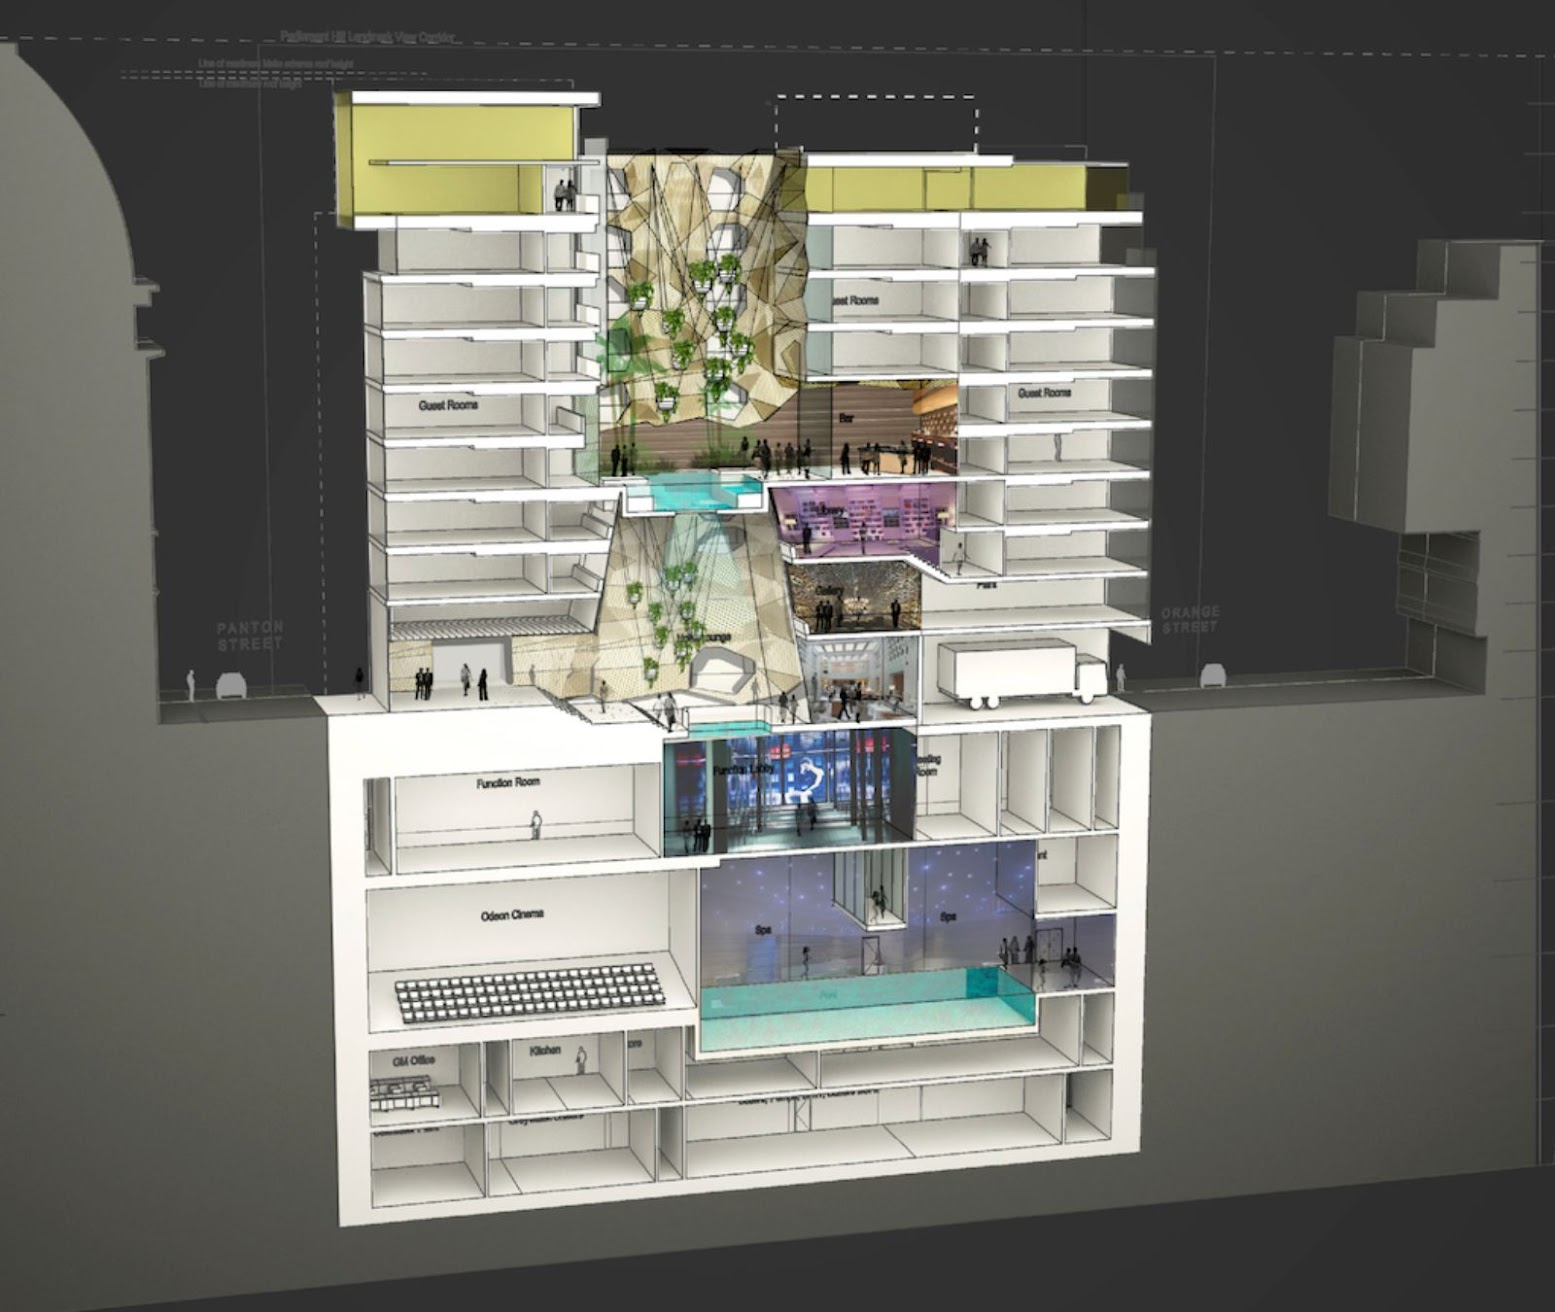 06-Hotel-plans-in-London's-Leicester-Square-by-Woods-Bagot